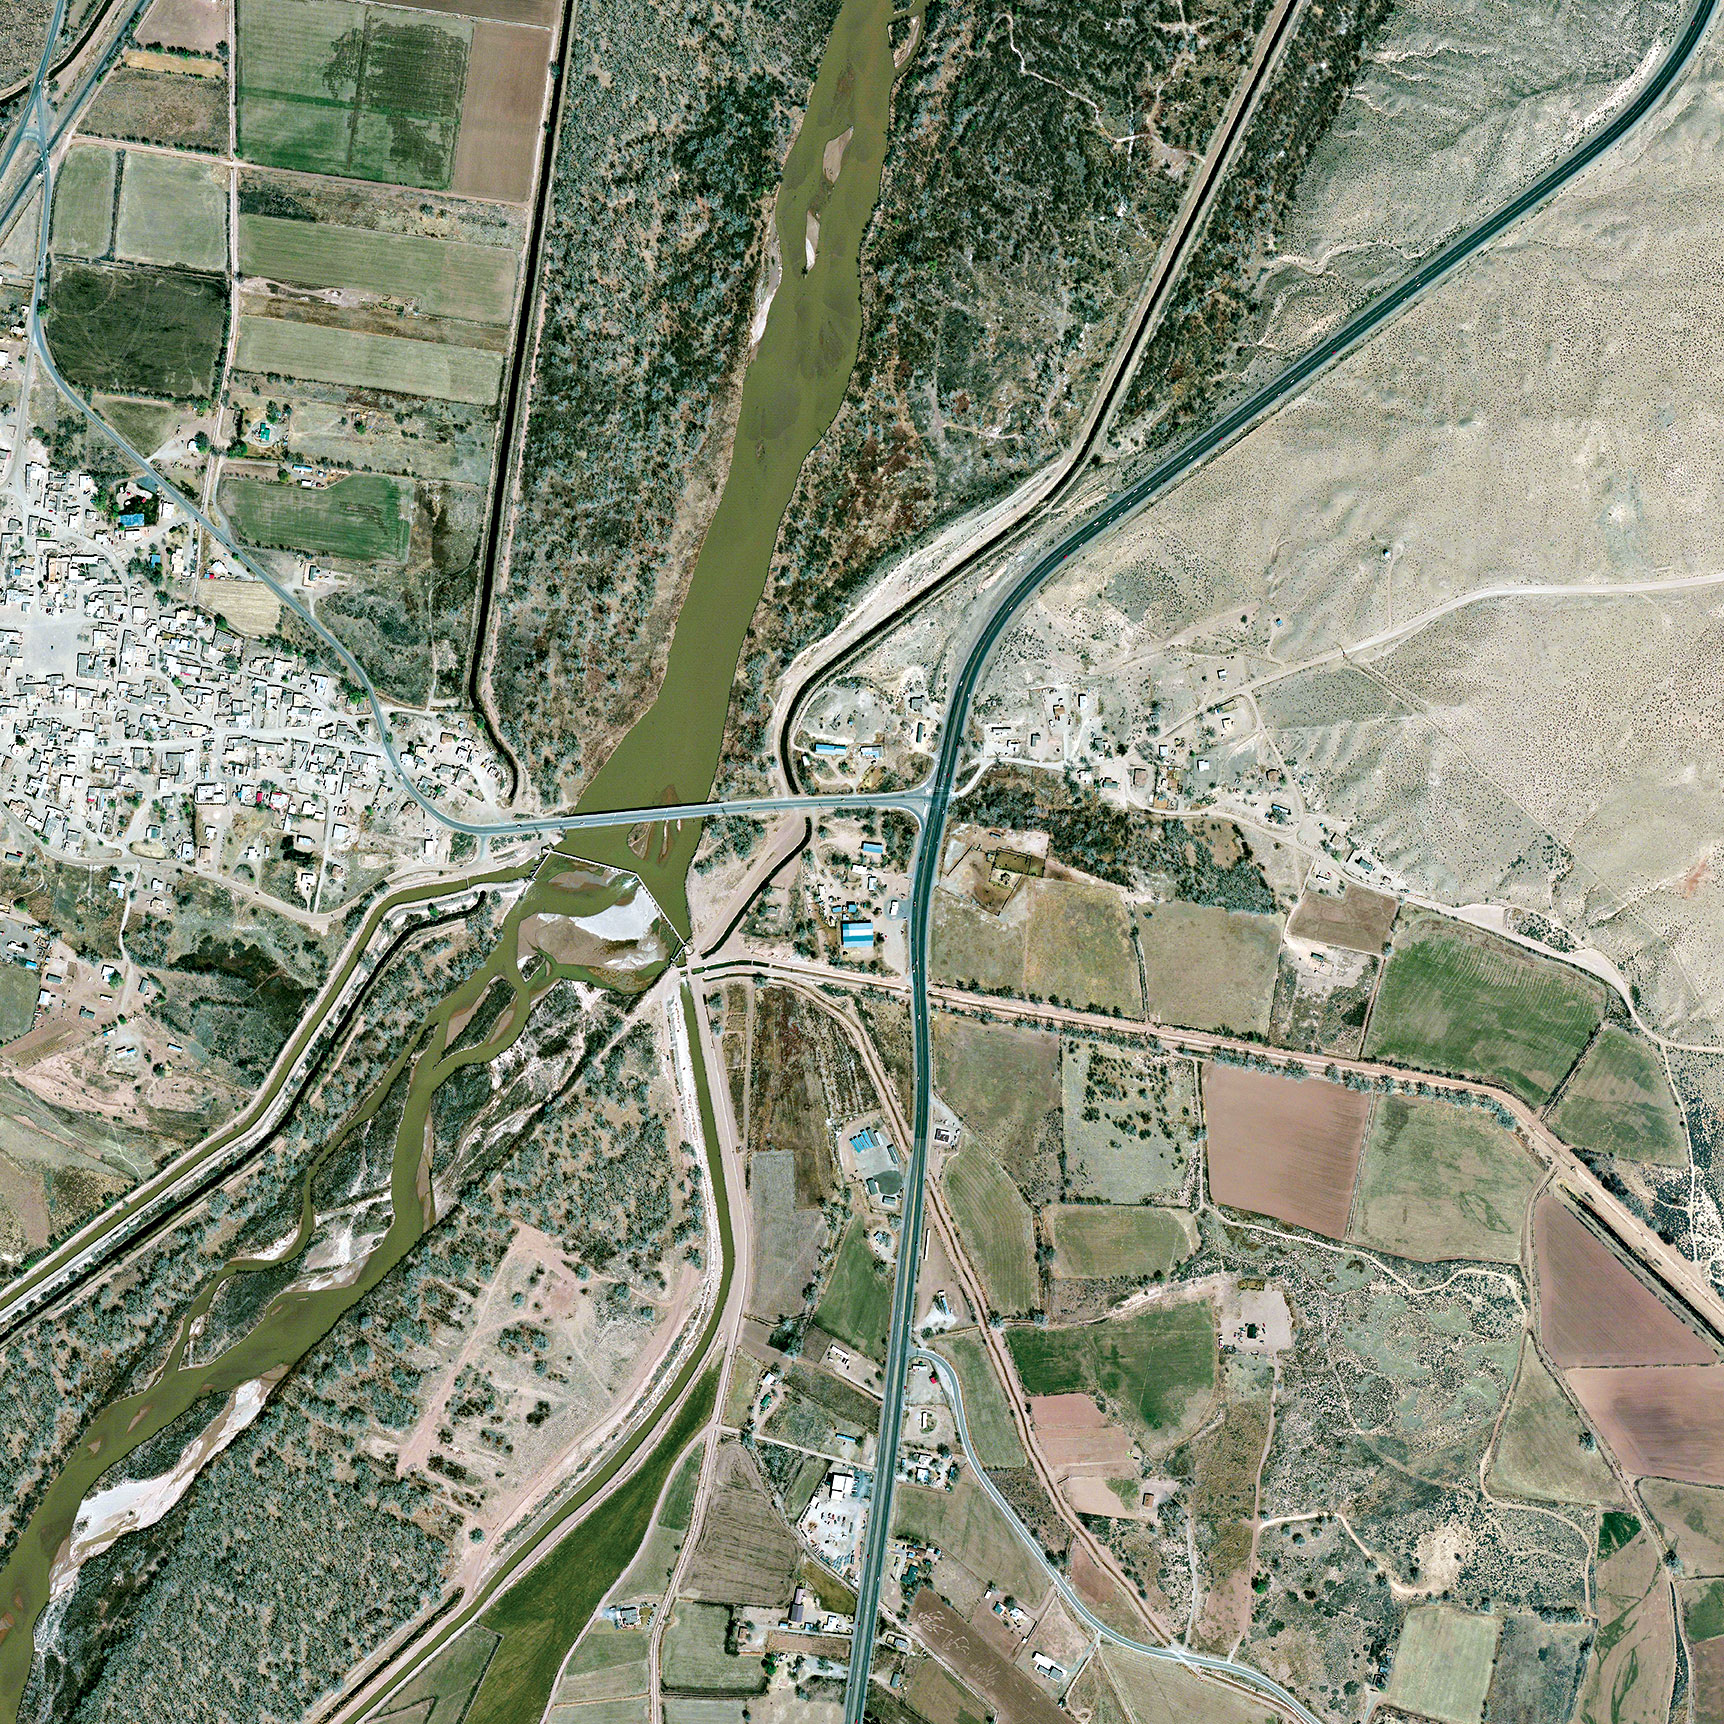 An aerial view of a section of the Rio Grande that could benefit from the recent water release. Daily Overview/Satellite images 2016, DigitalGlobe, Inc.